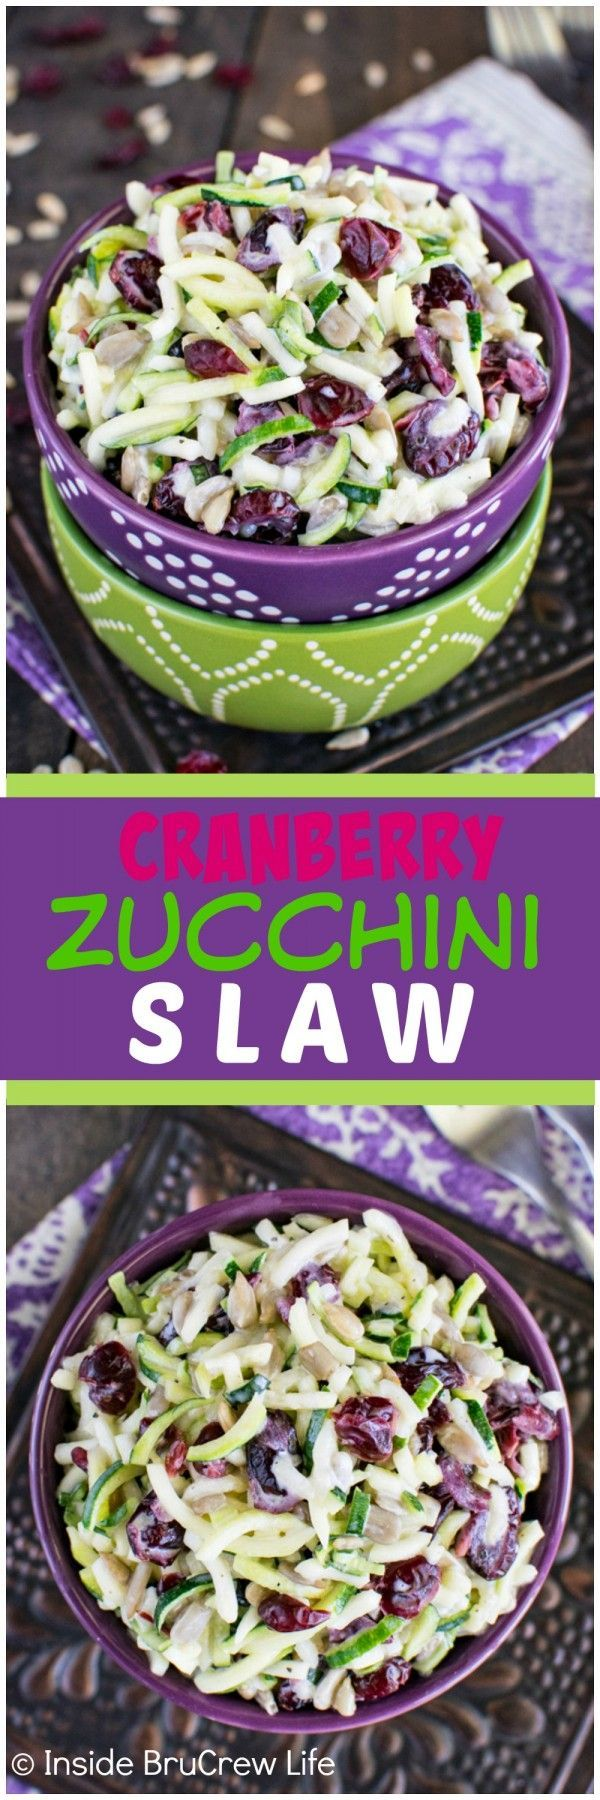 Cranberry Zucchini Slaw - nuts and berries give this easy salad a great sweet and salty flavor. This easy recipe is perfect for summer picnics!